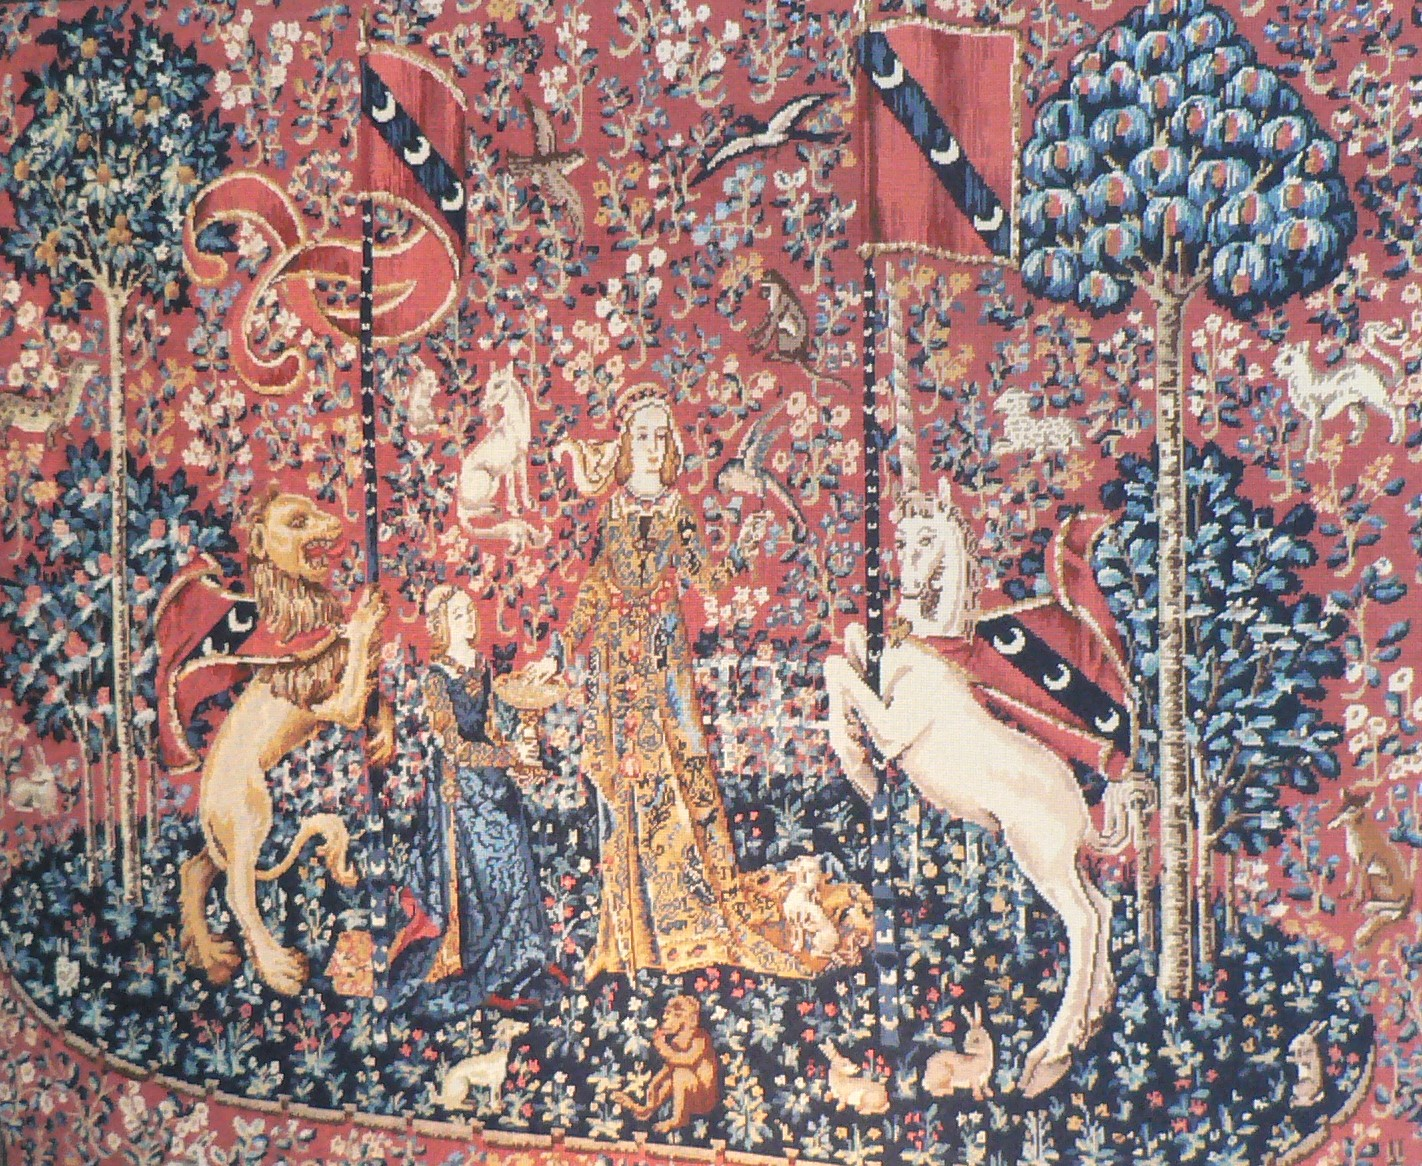 Reproduction de la Dame à la Licorne